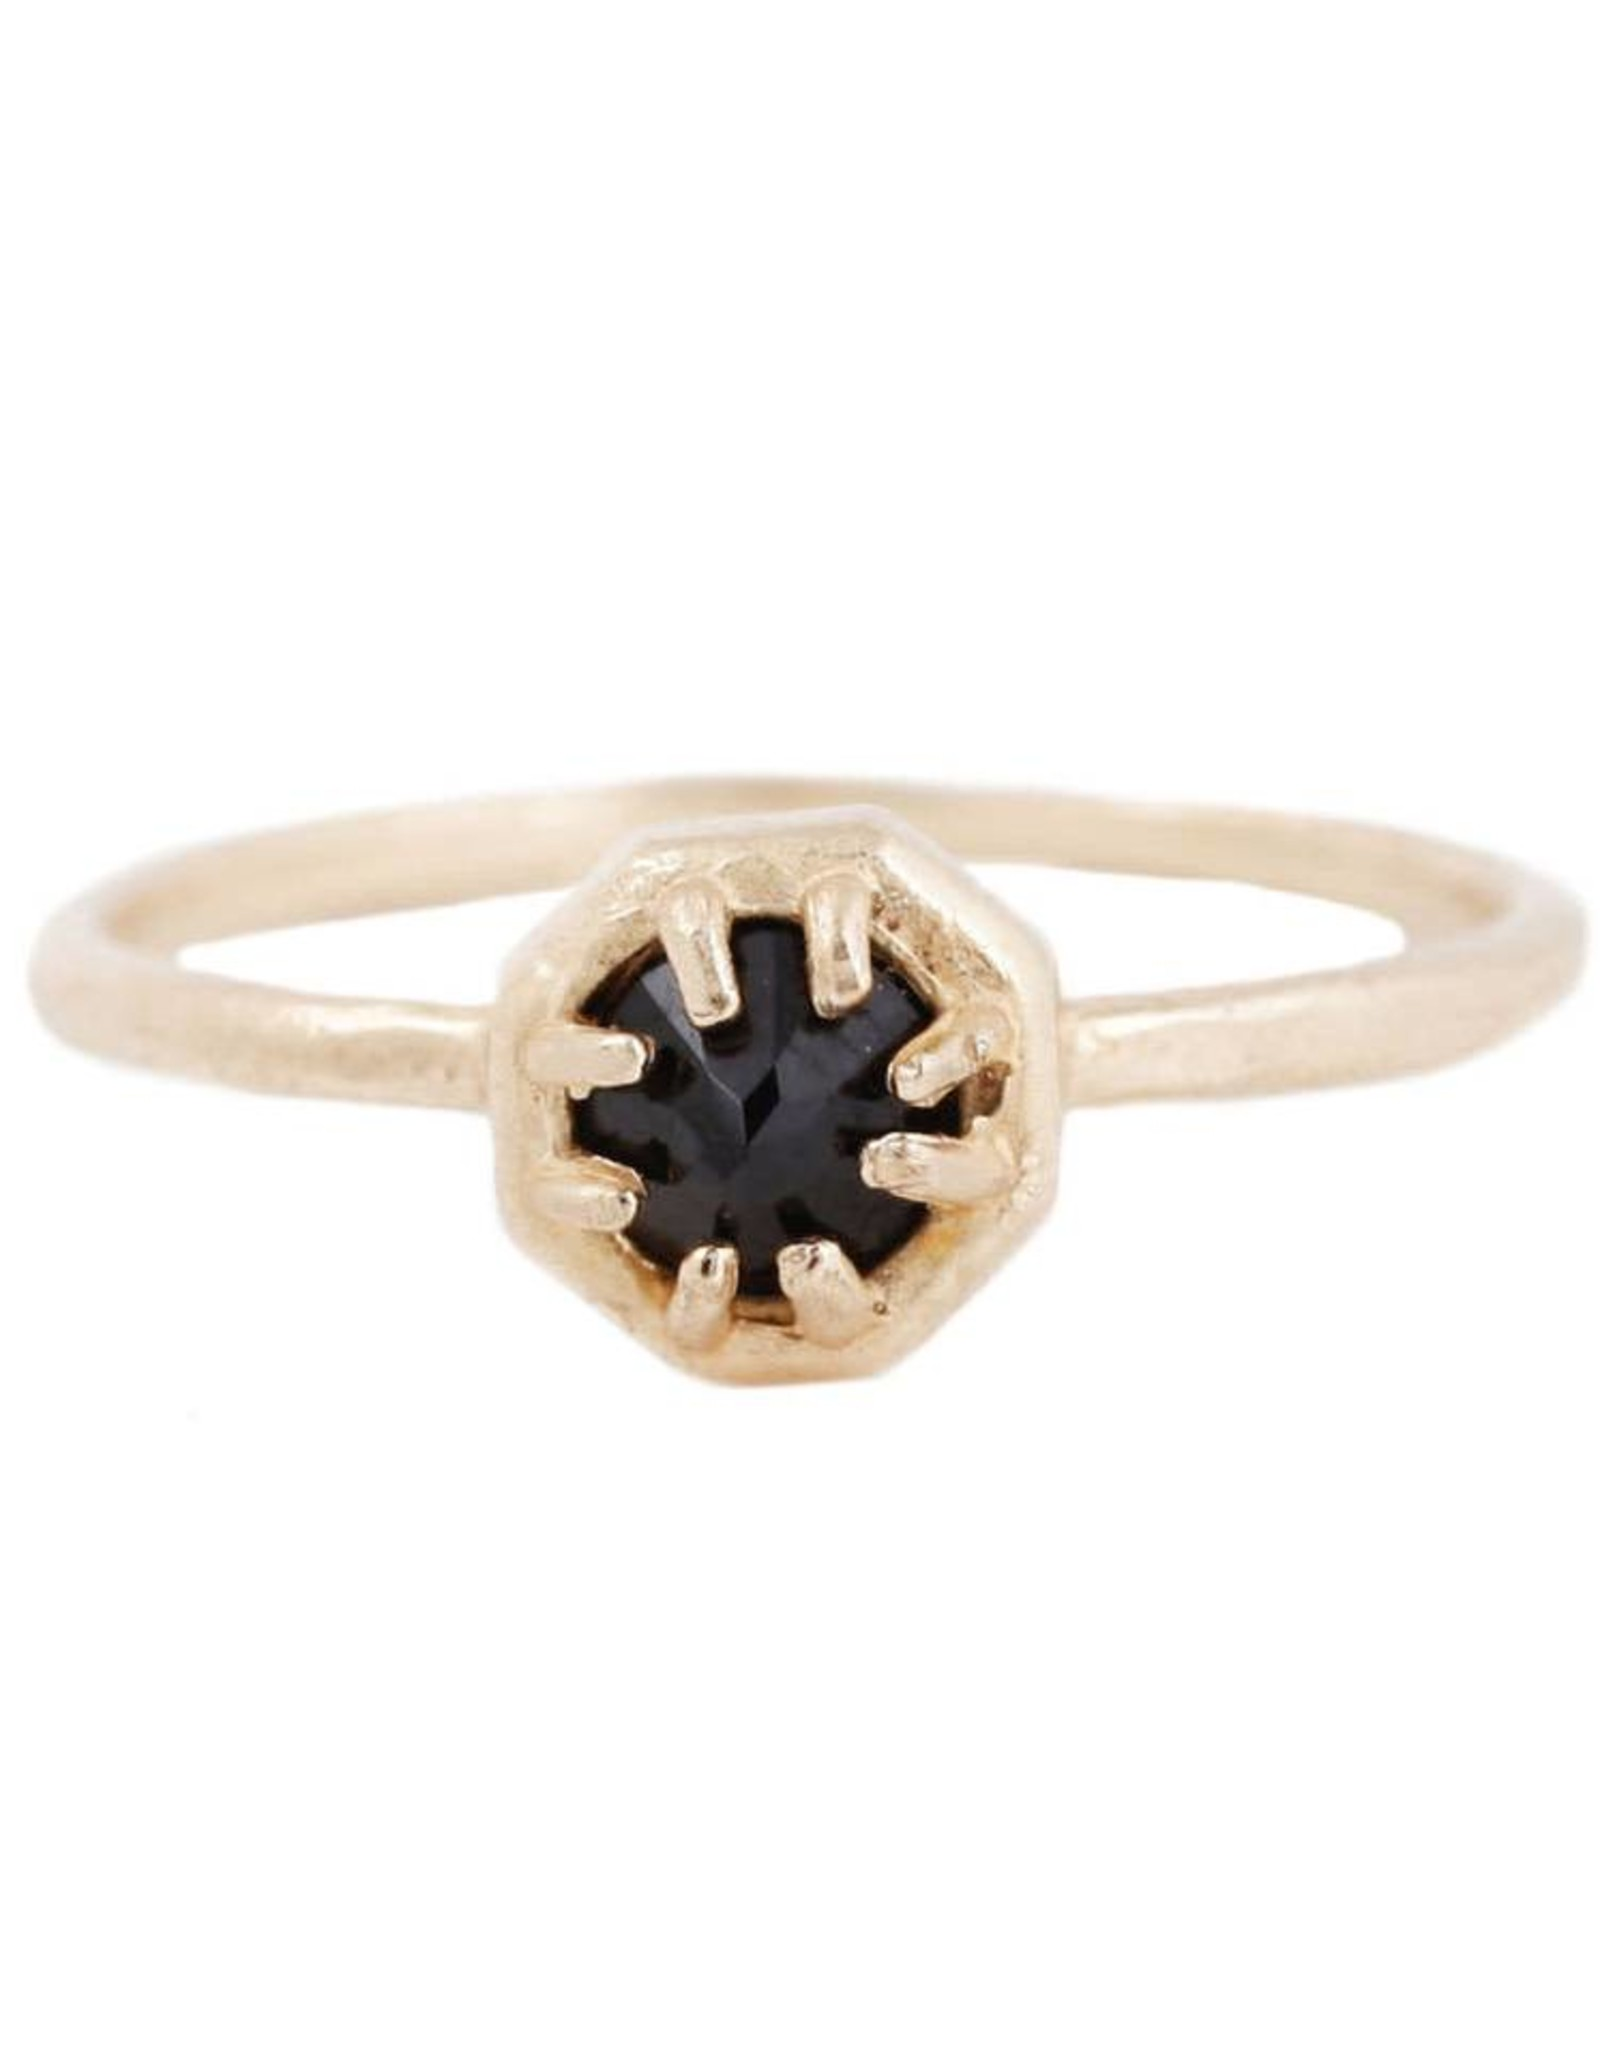 Lauren Wolf Jewelry Tiny Gold Octagon Ring - Black Spinel